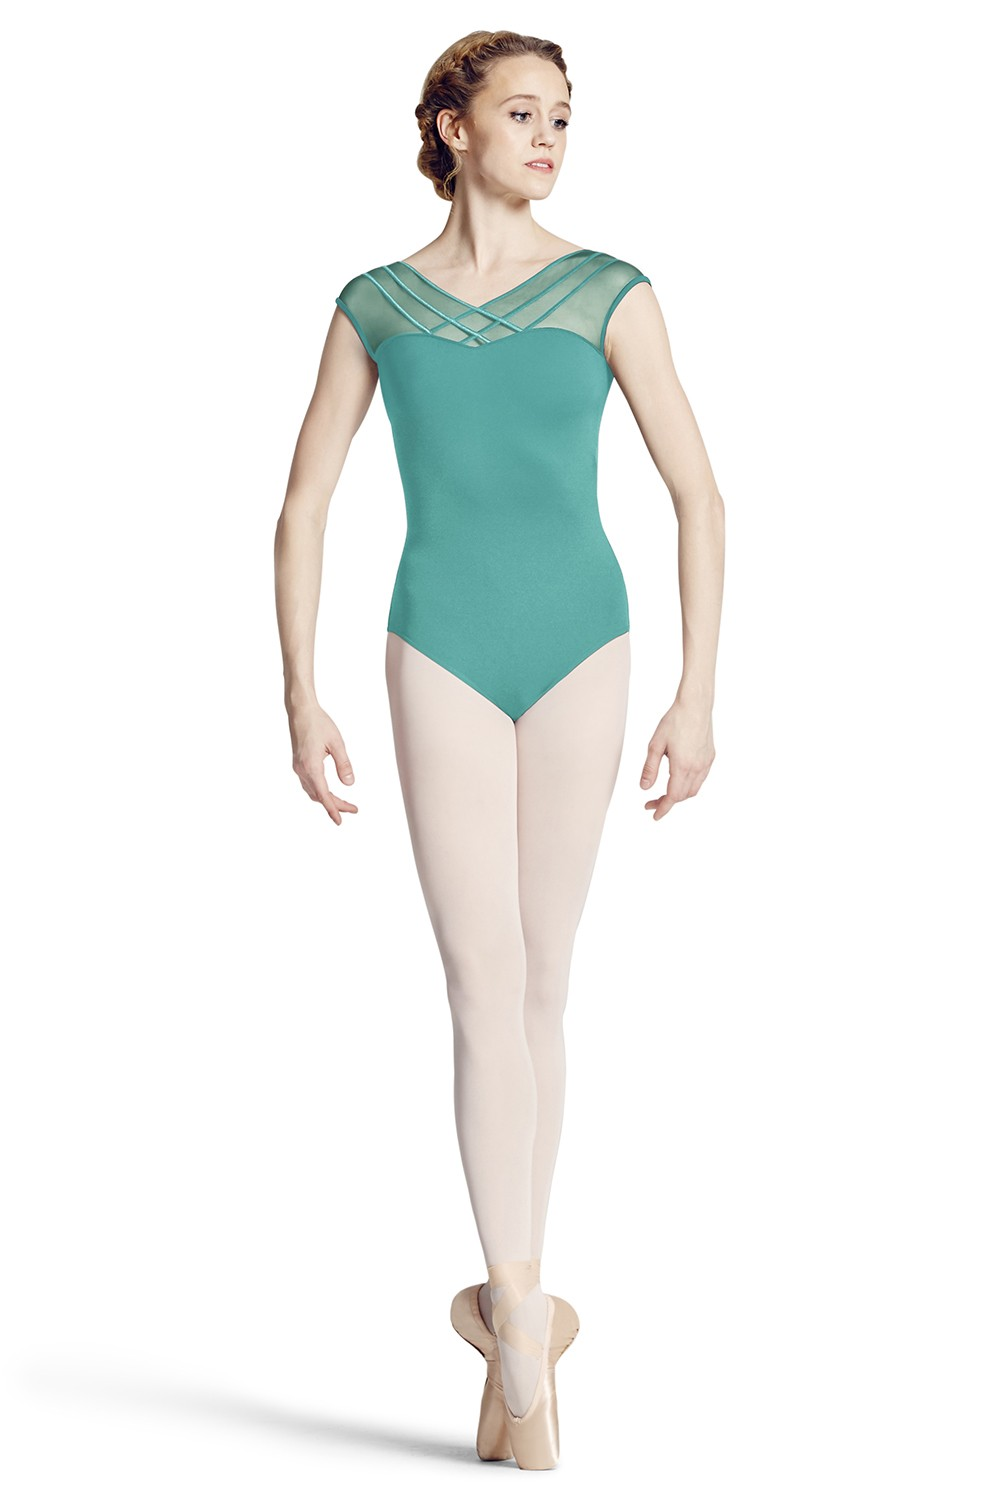 Altair Womens Short Sleeve Leotards